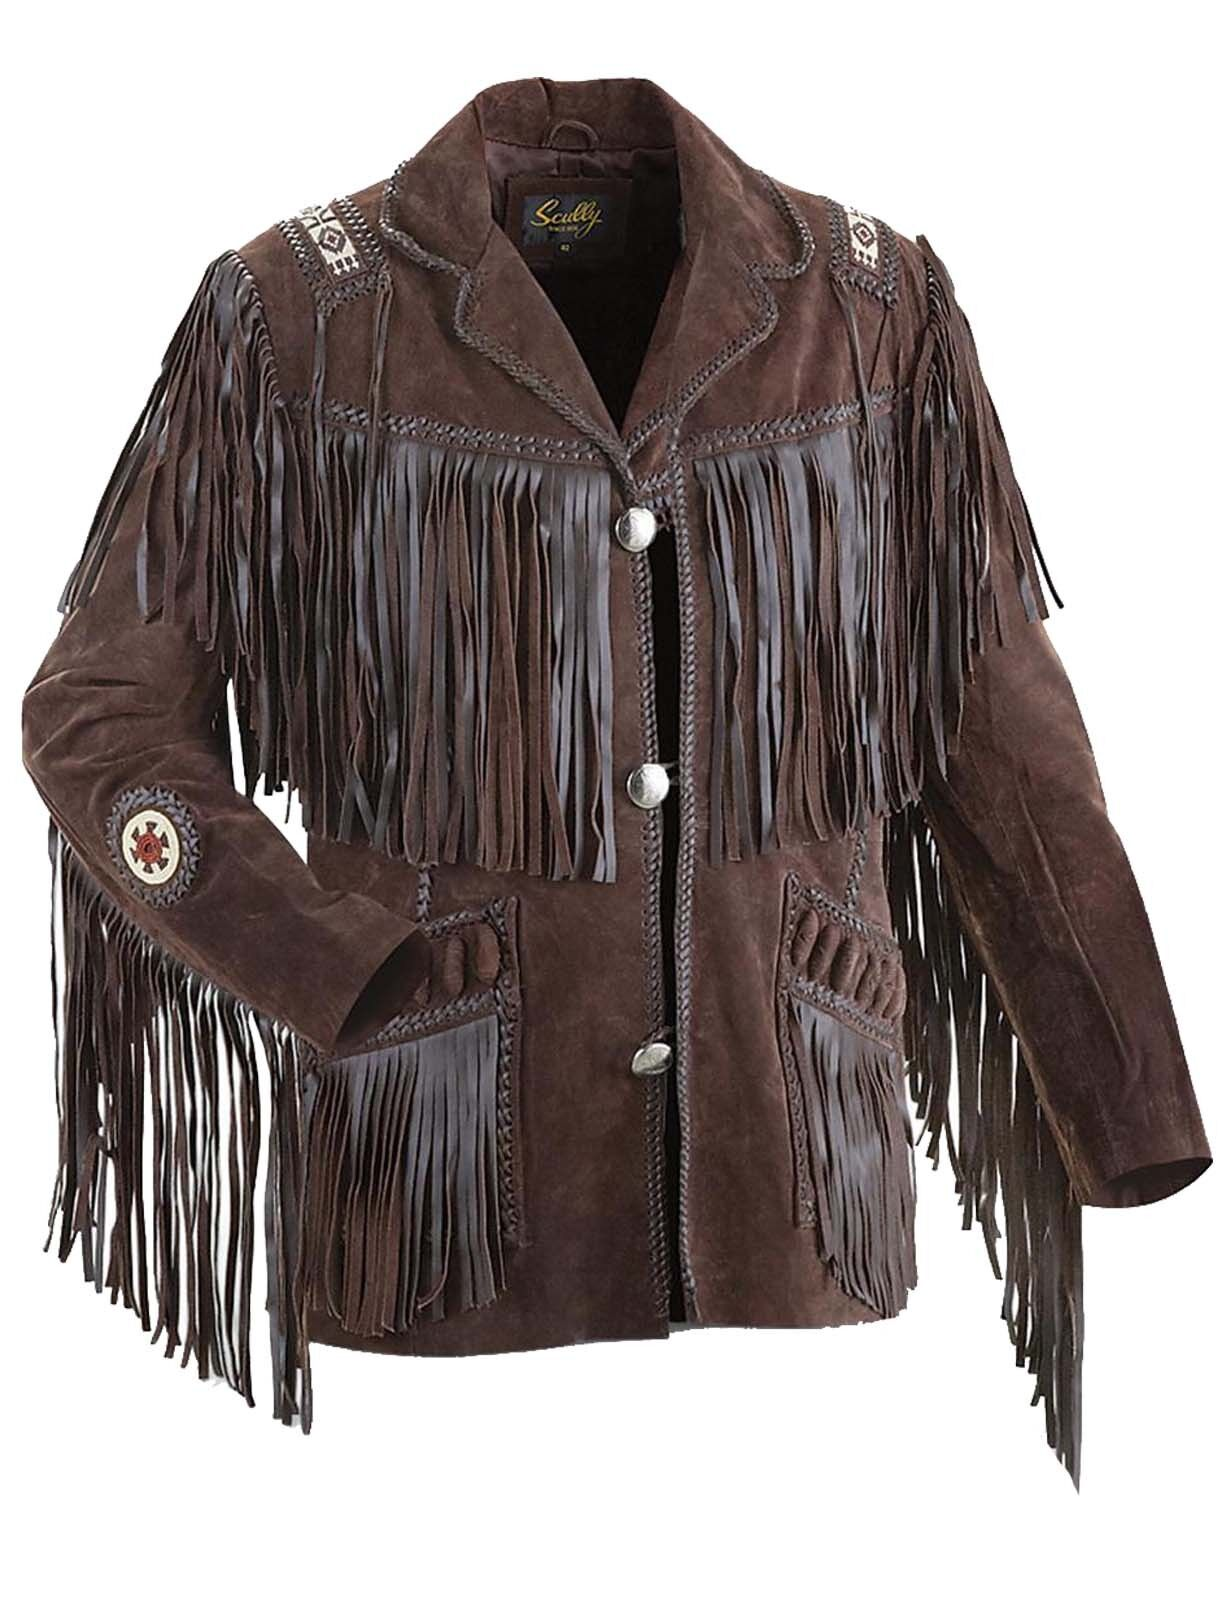 Herren Western Pelle Indossare Cowboy Frangia Native American Cappotto Giacca IT